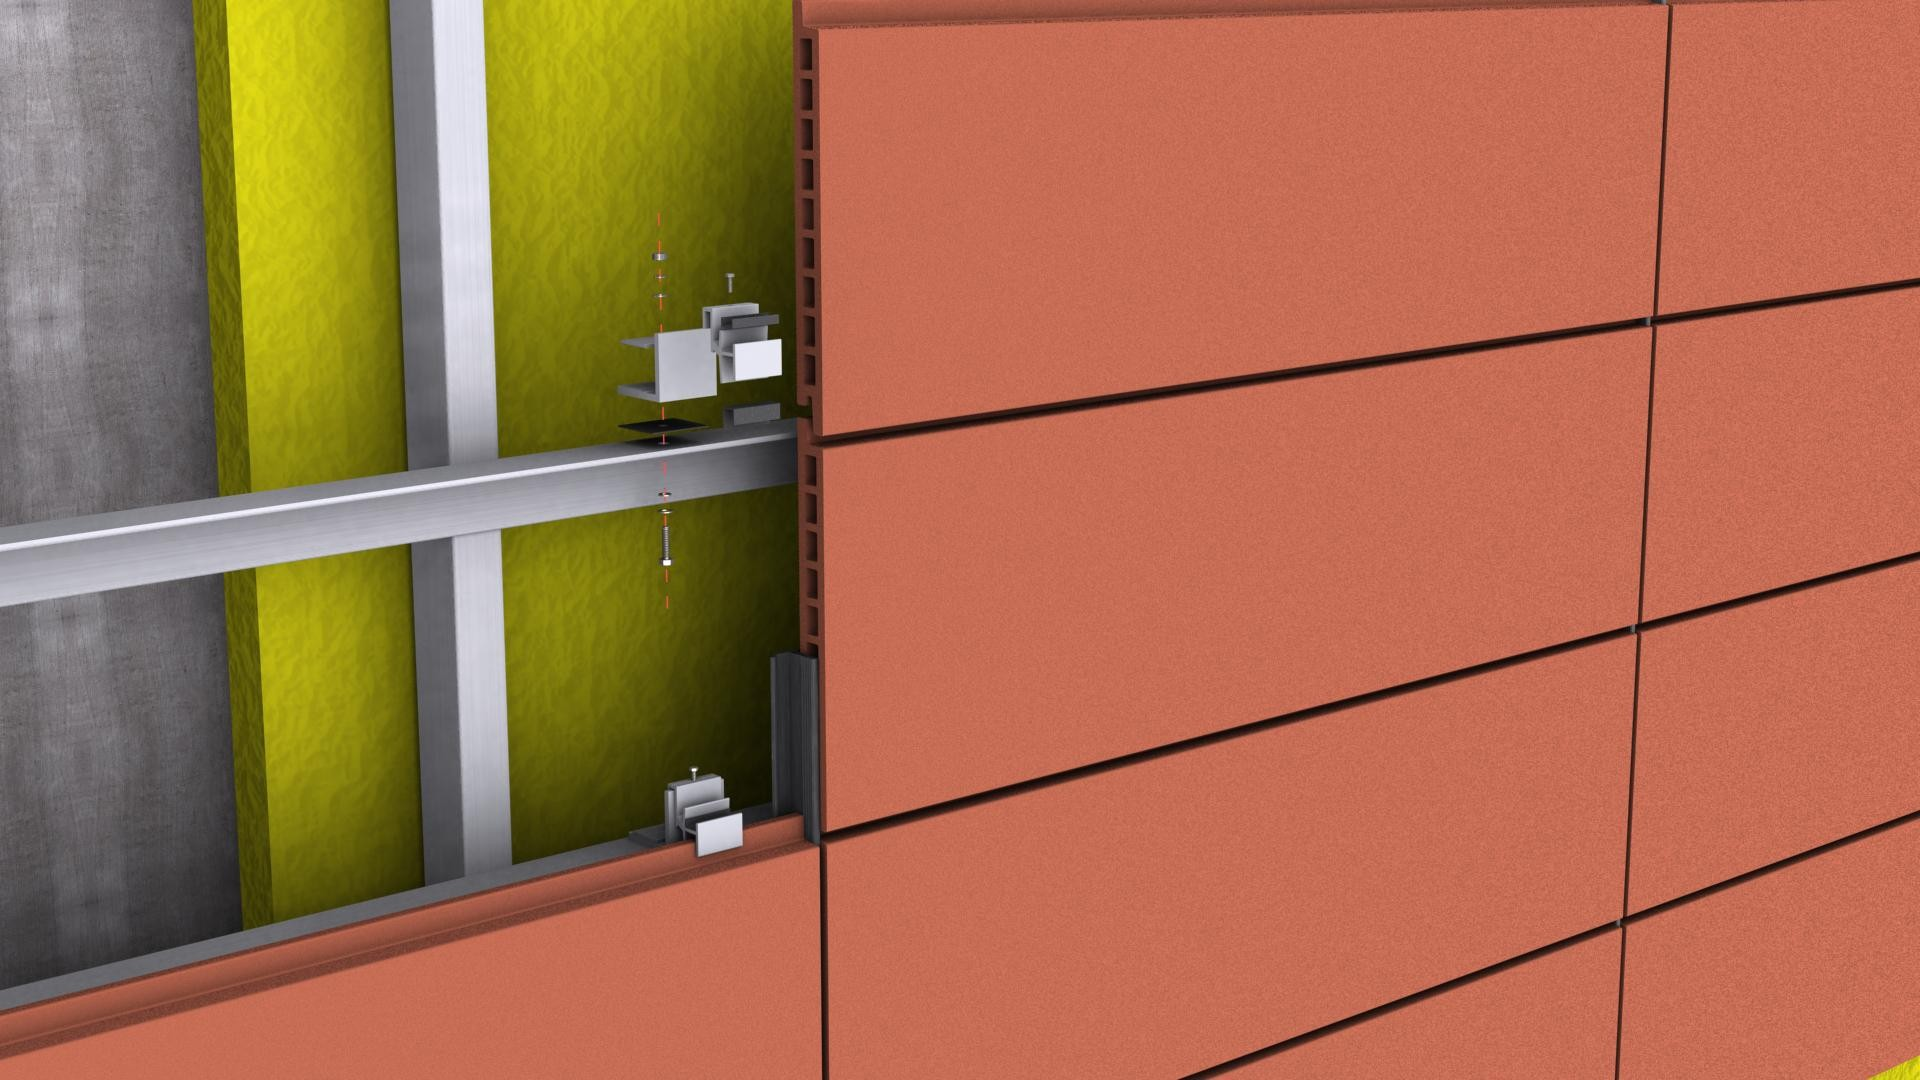 Rincon Terracotta Panels By Rincon Building System Co